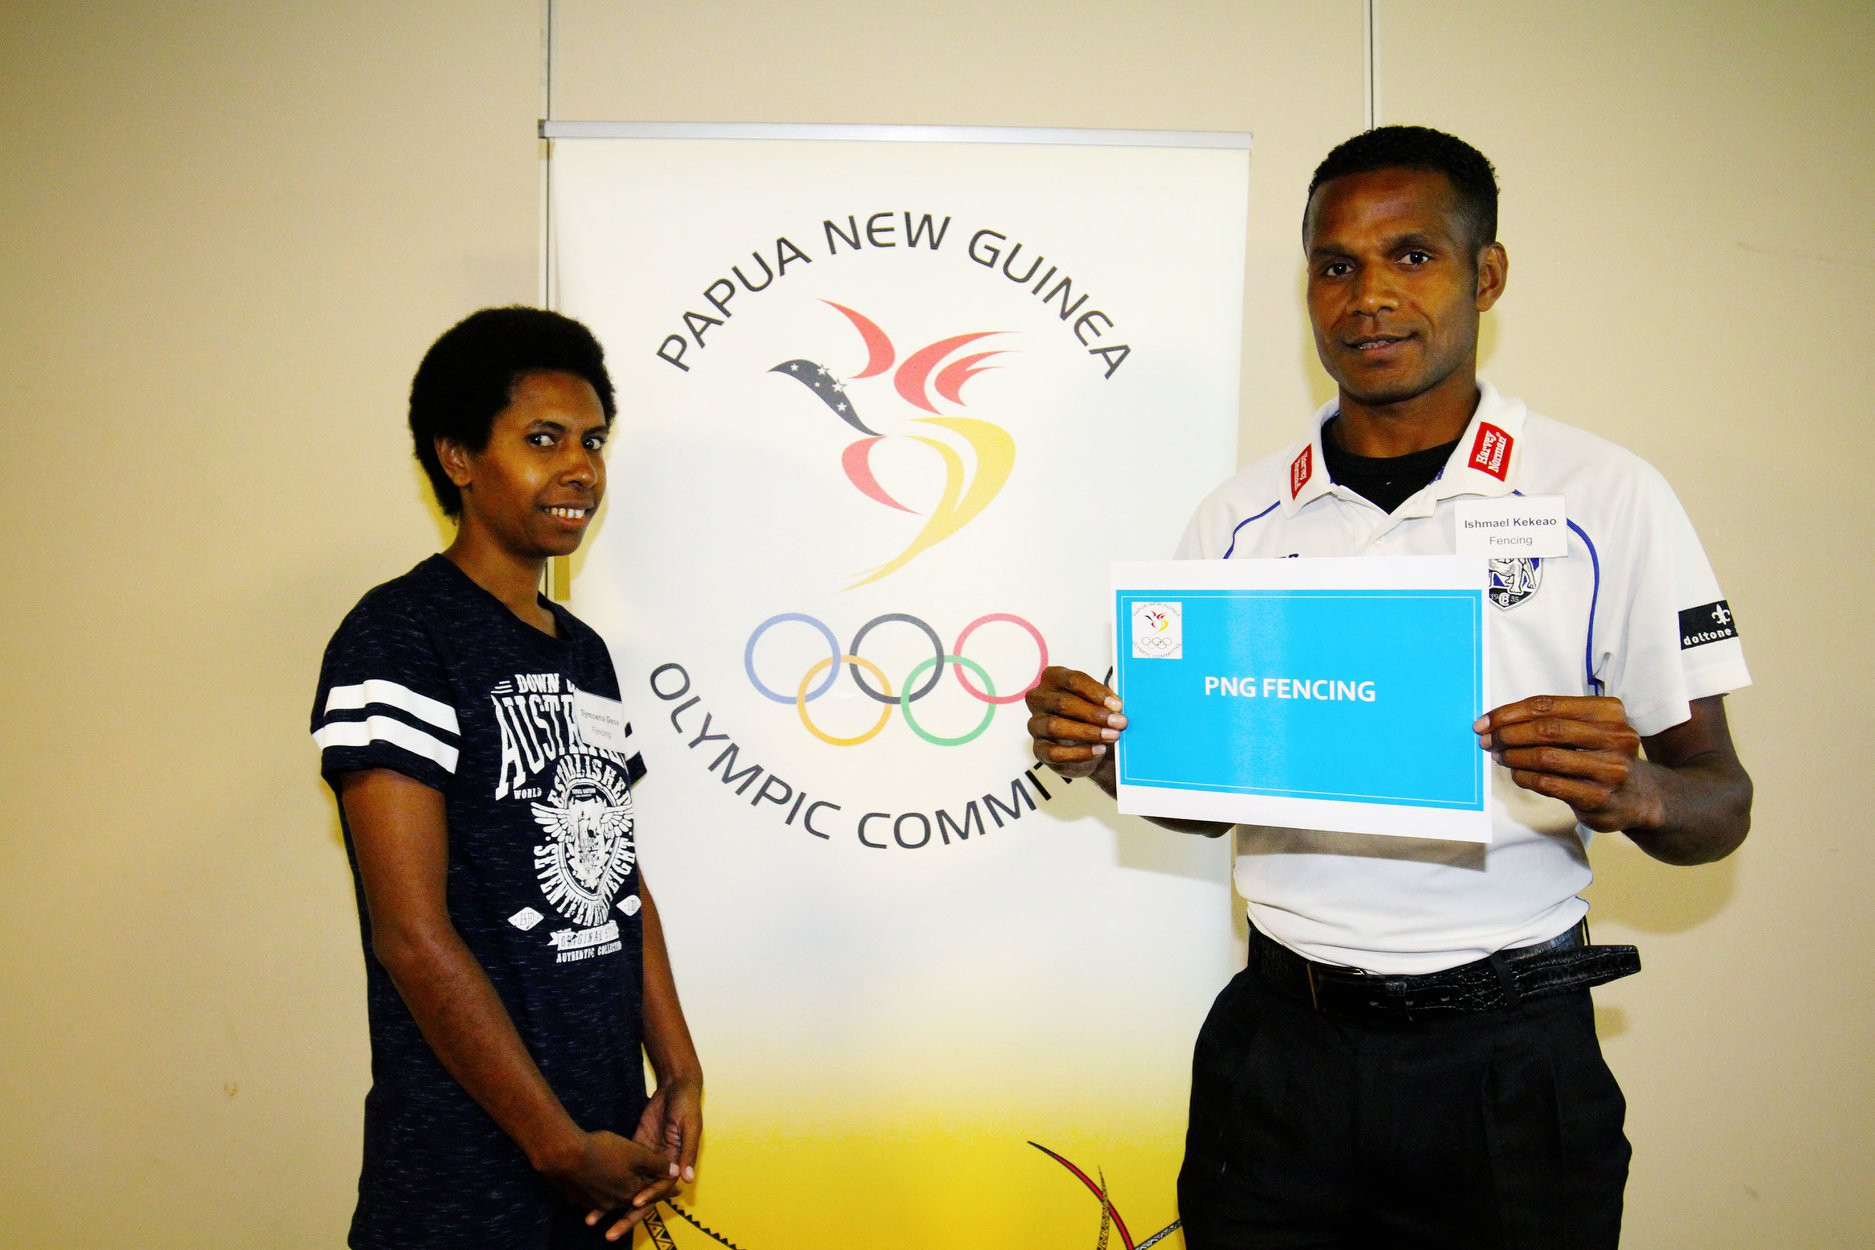 Papua New Guinea Olympic Committee accepts fencing as newest sport